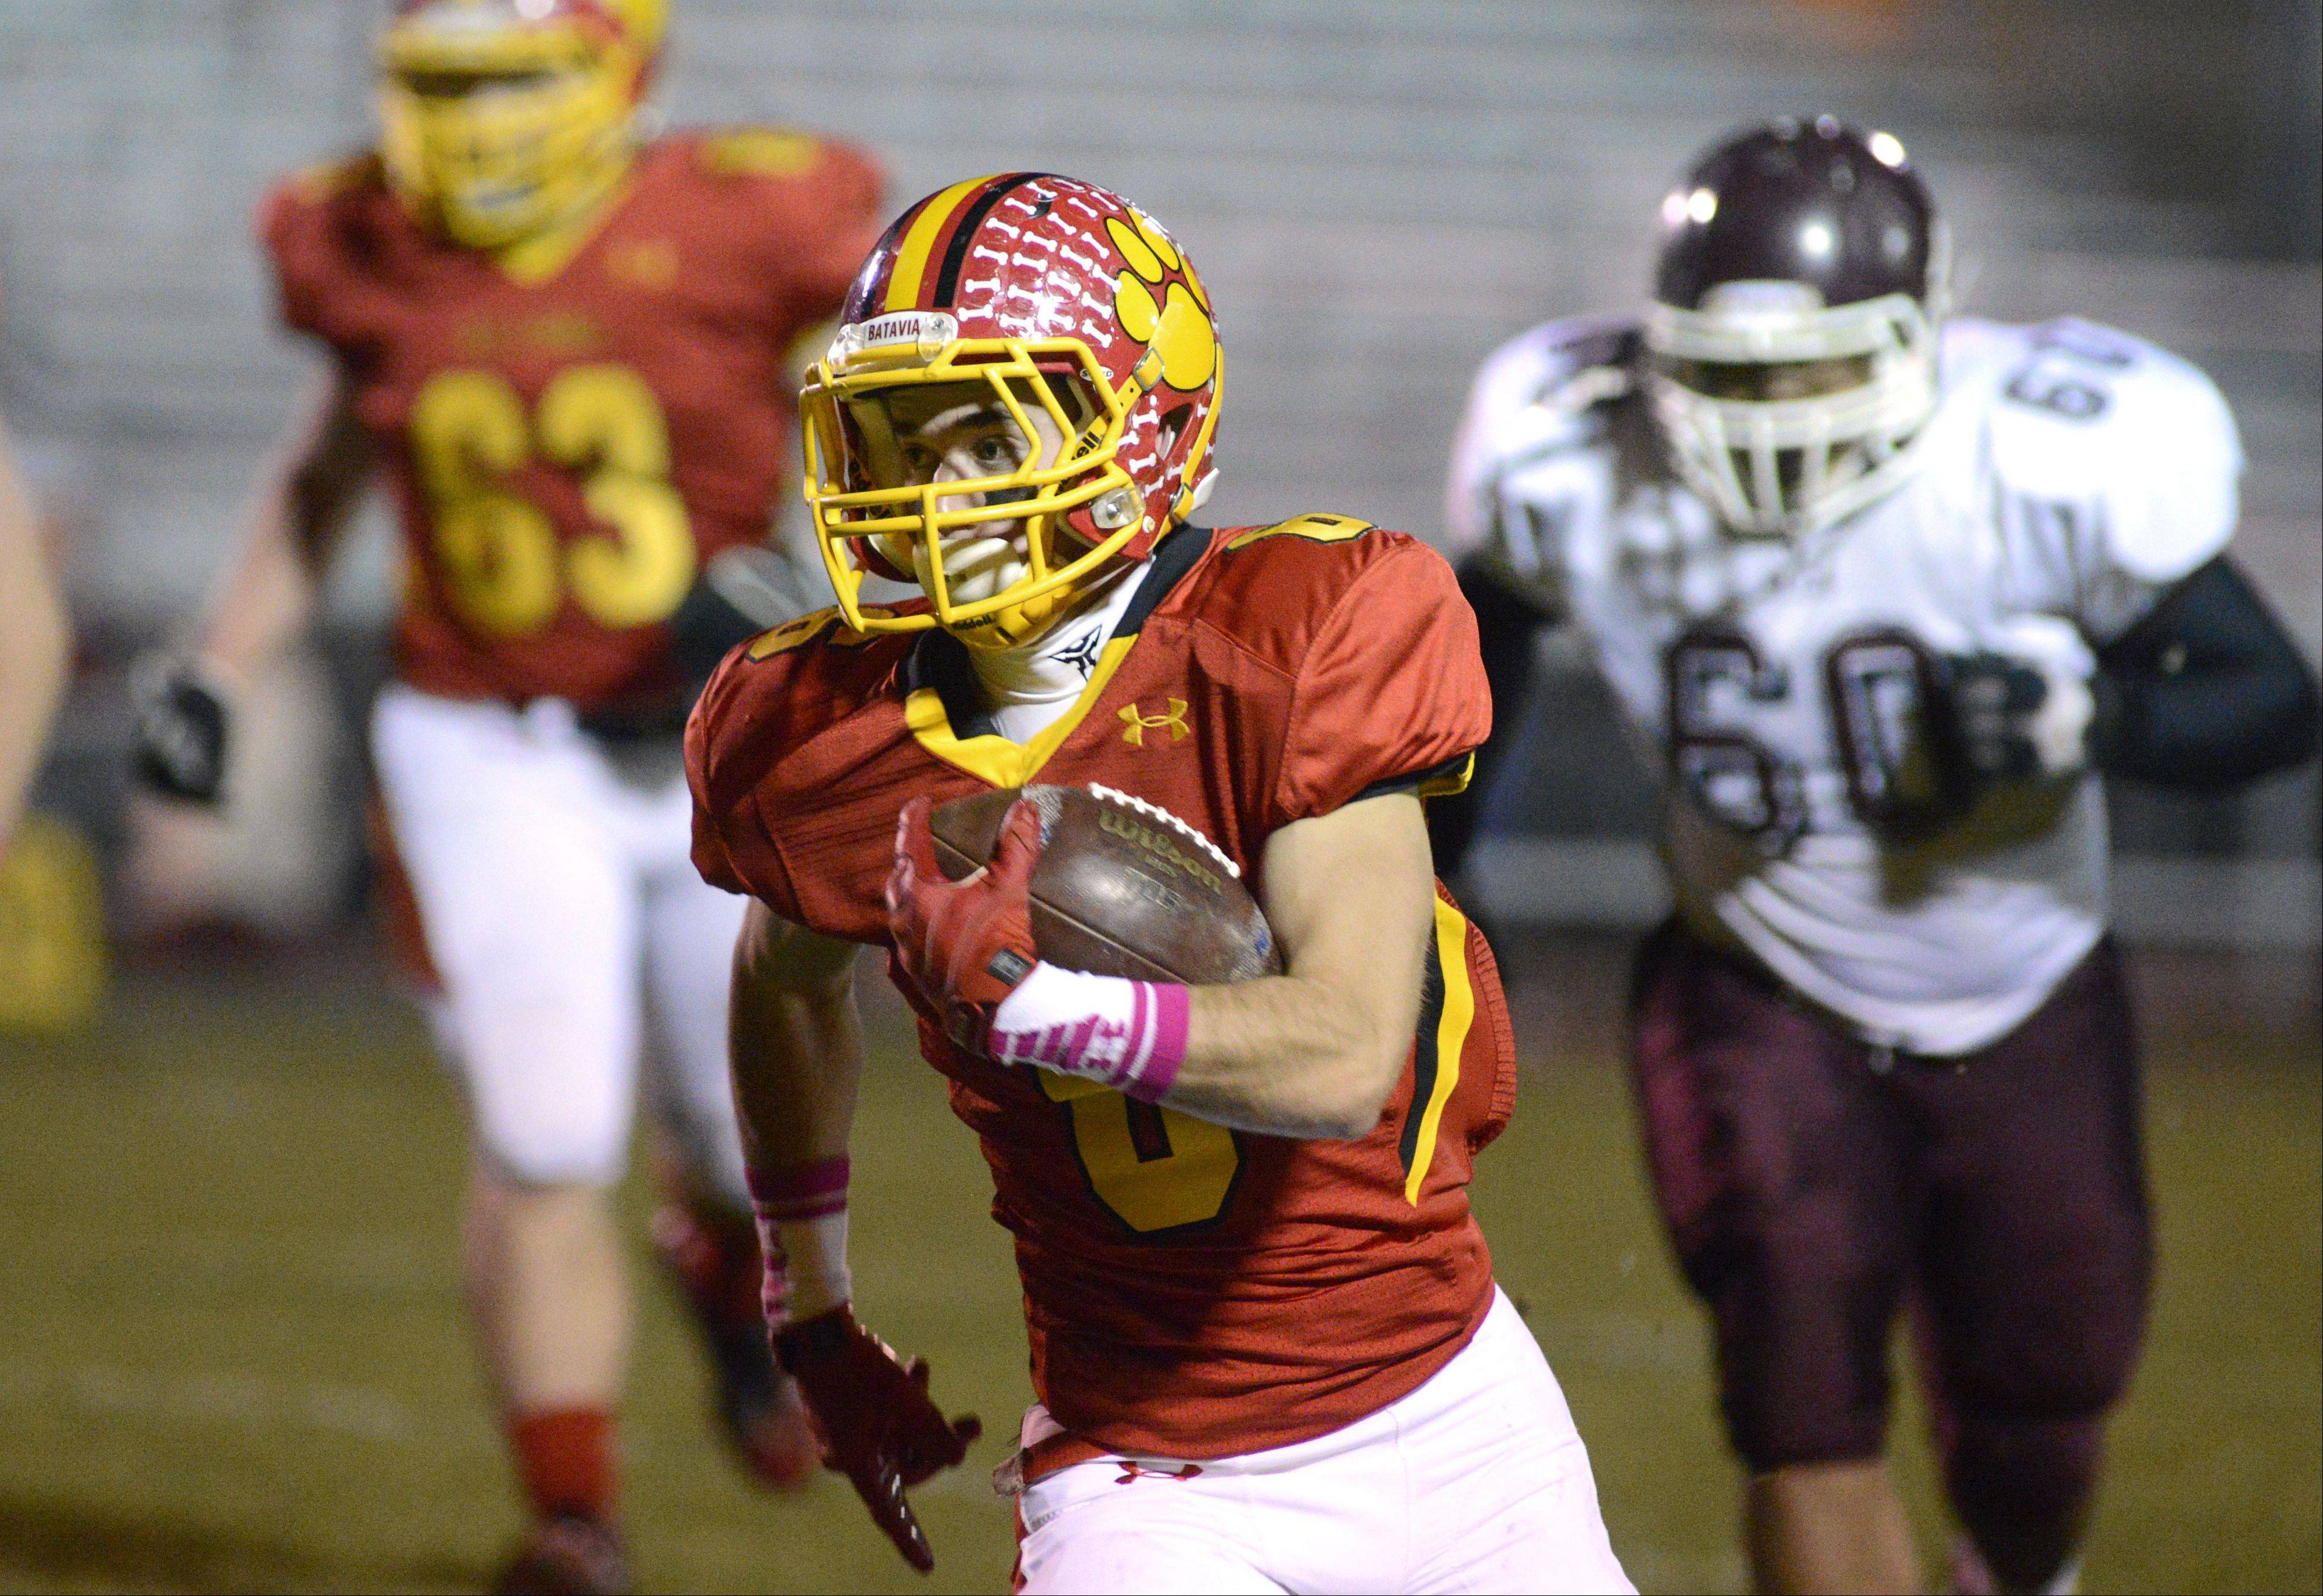 Batavia's Rourke Mullins score the first touchdown of the night over Elgin in the first quarter on Friday, October 25.